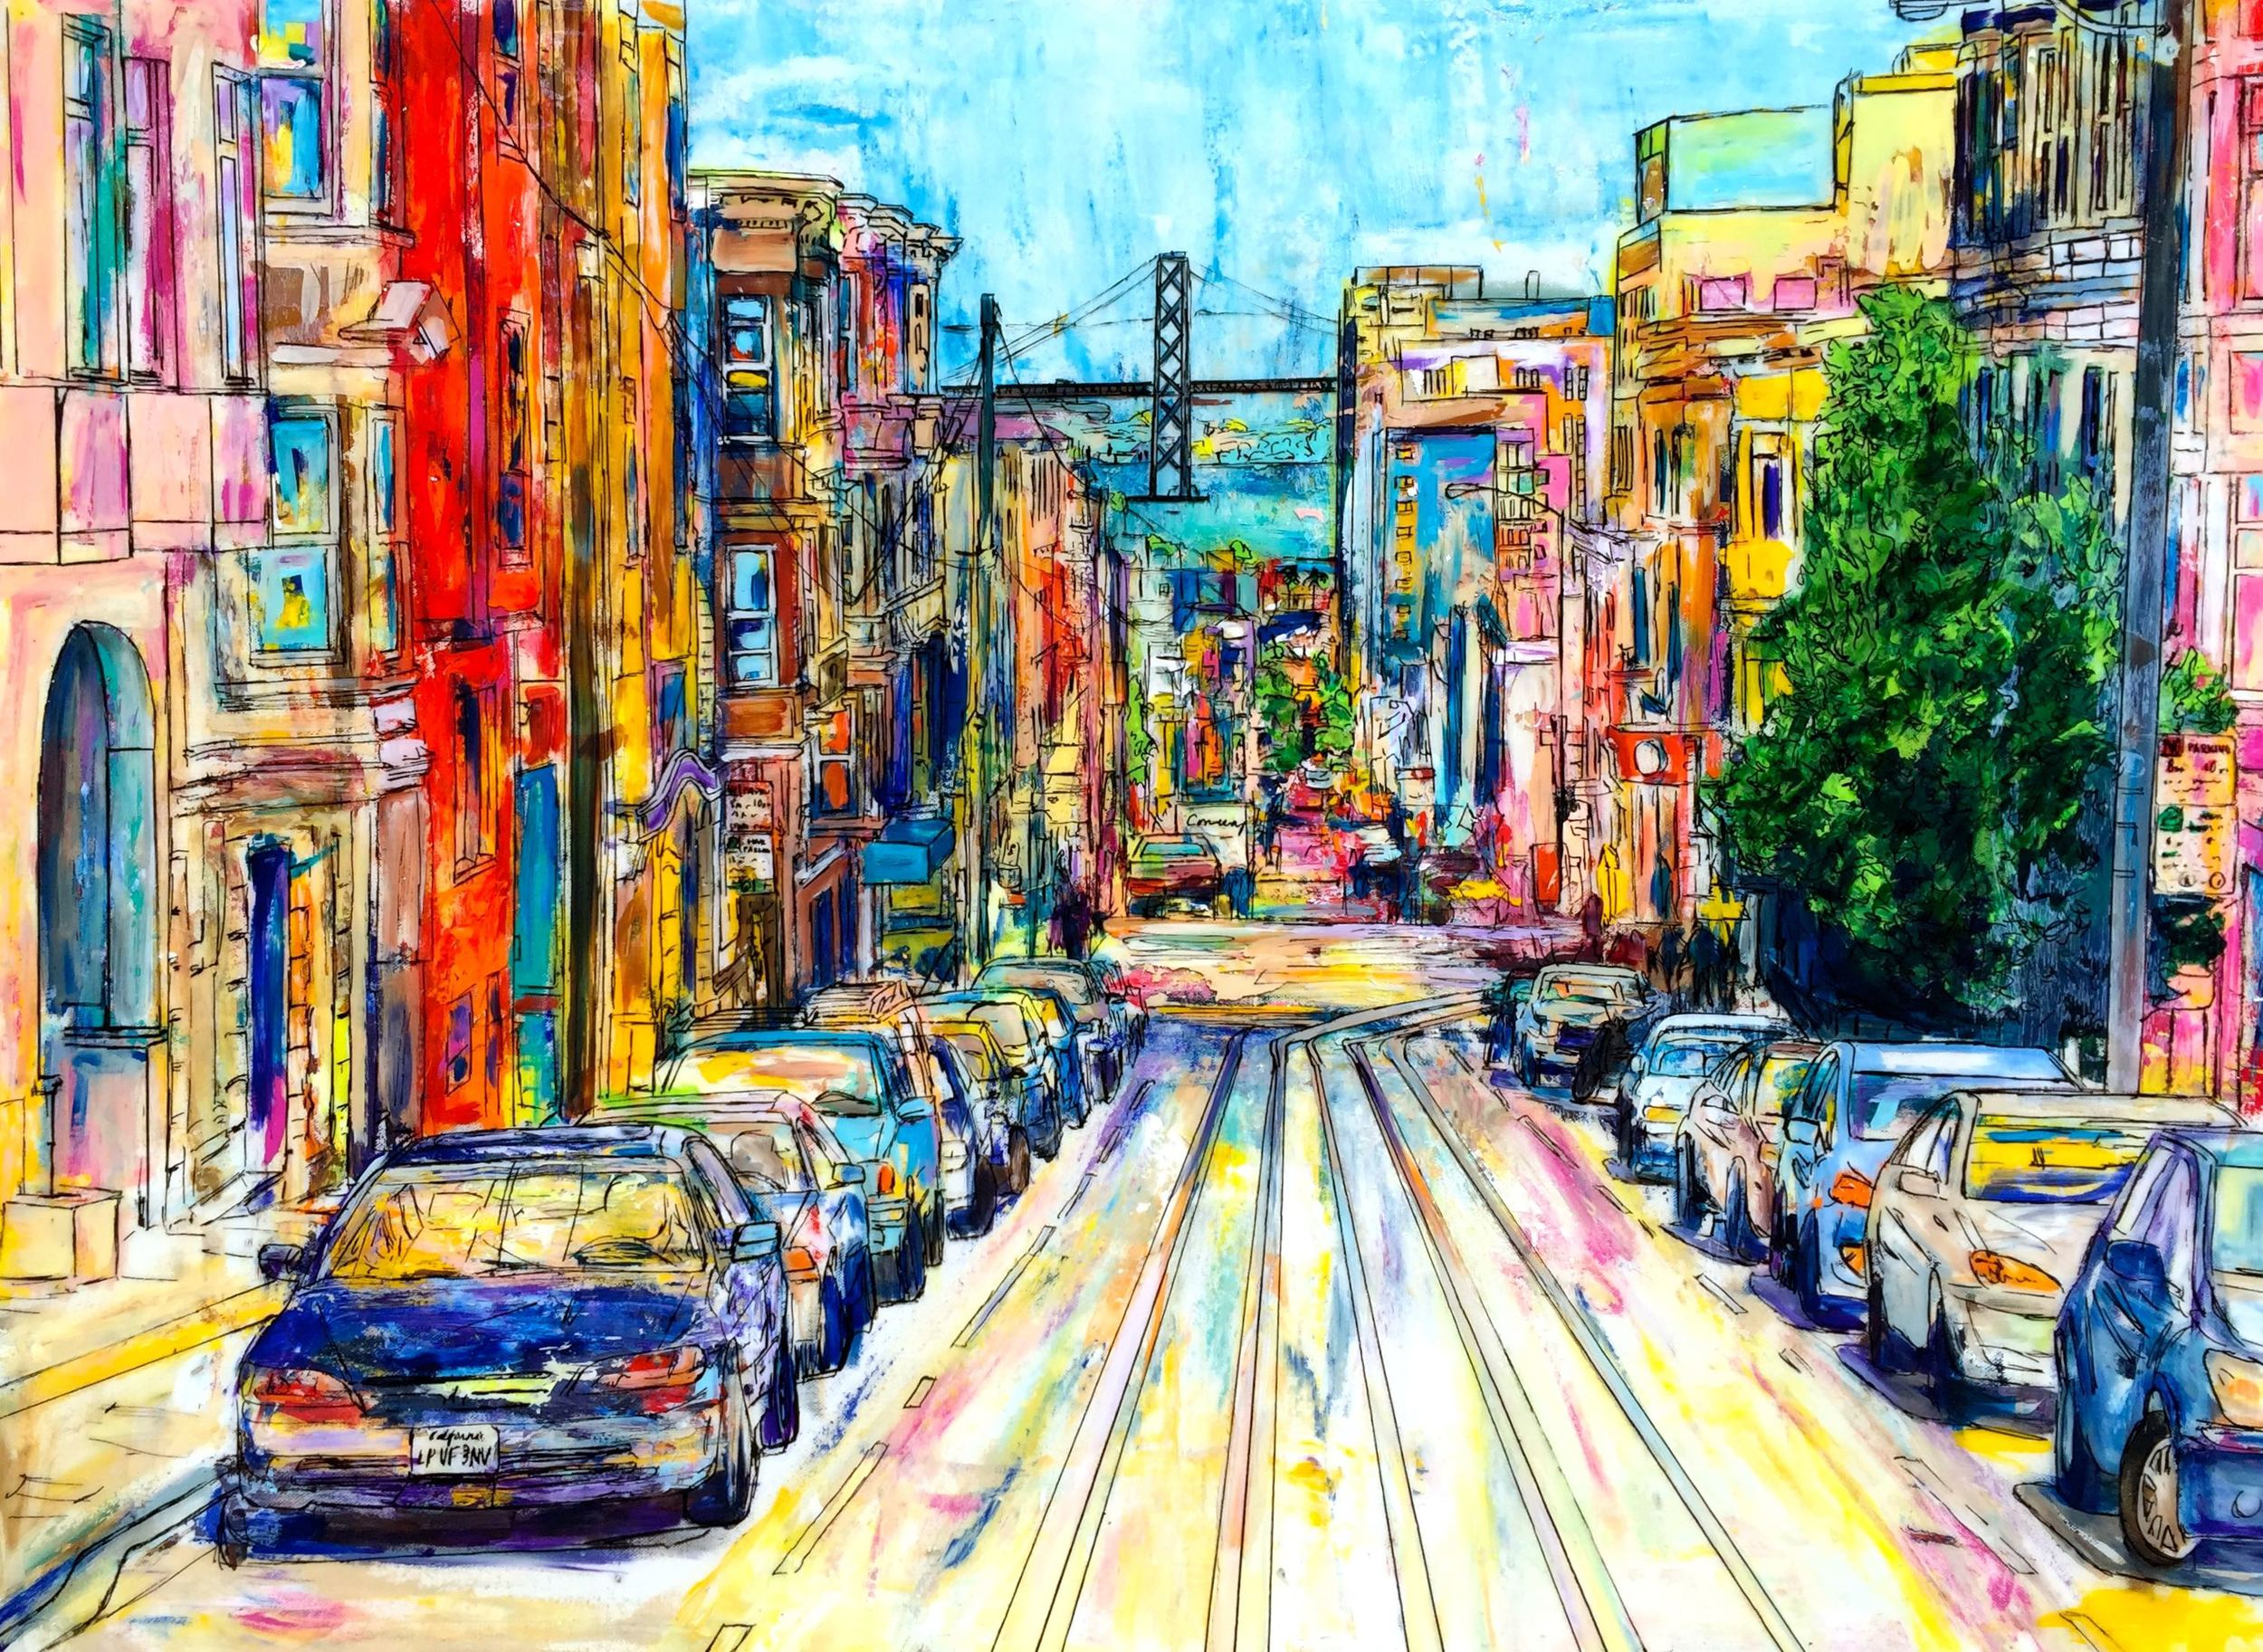 """PACIFIC AND POWELL (SAN FRANICSCO)   40 x 30""""  Acrylic, ink, acetate, and epoxy resin on canvas  2015  PRINTS AVAILABLE / ORIGINAL SOLD"""